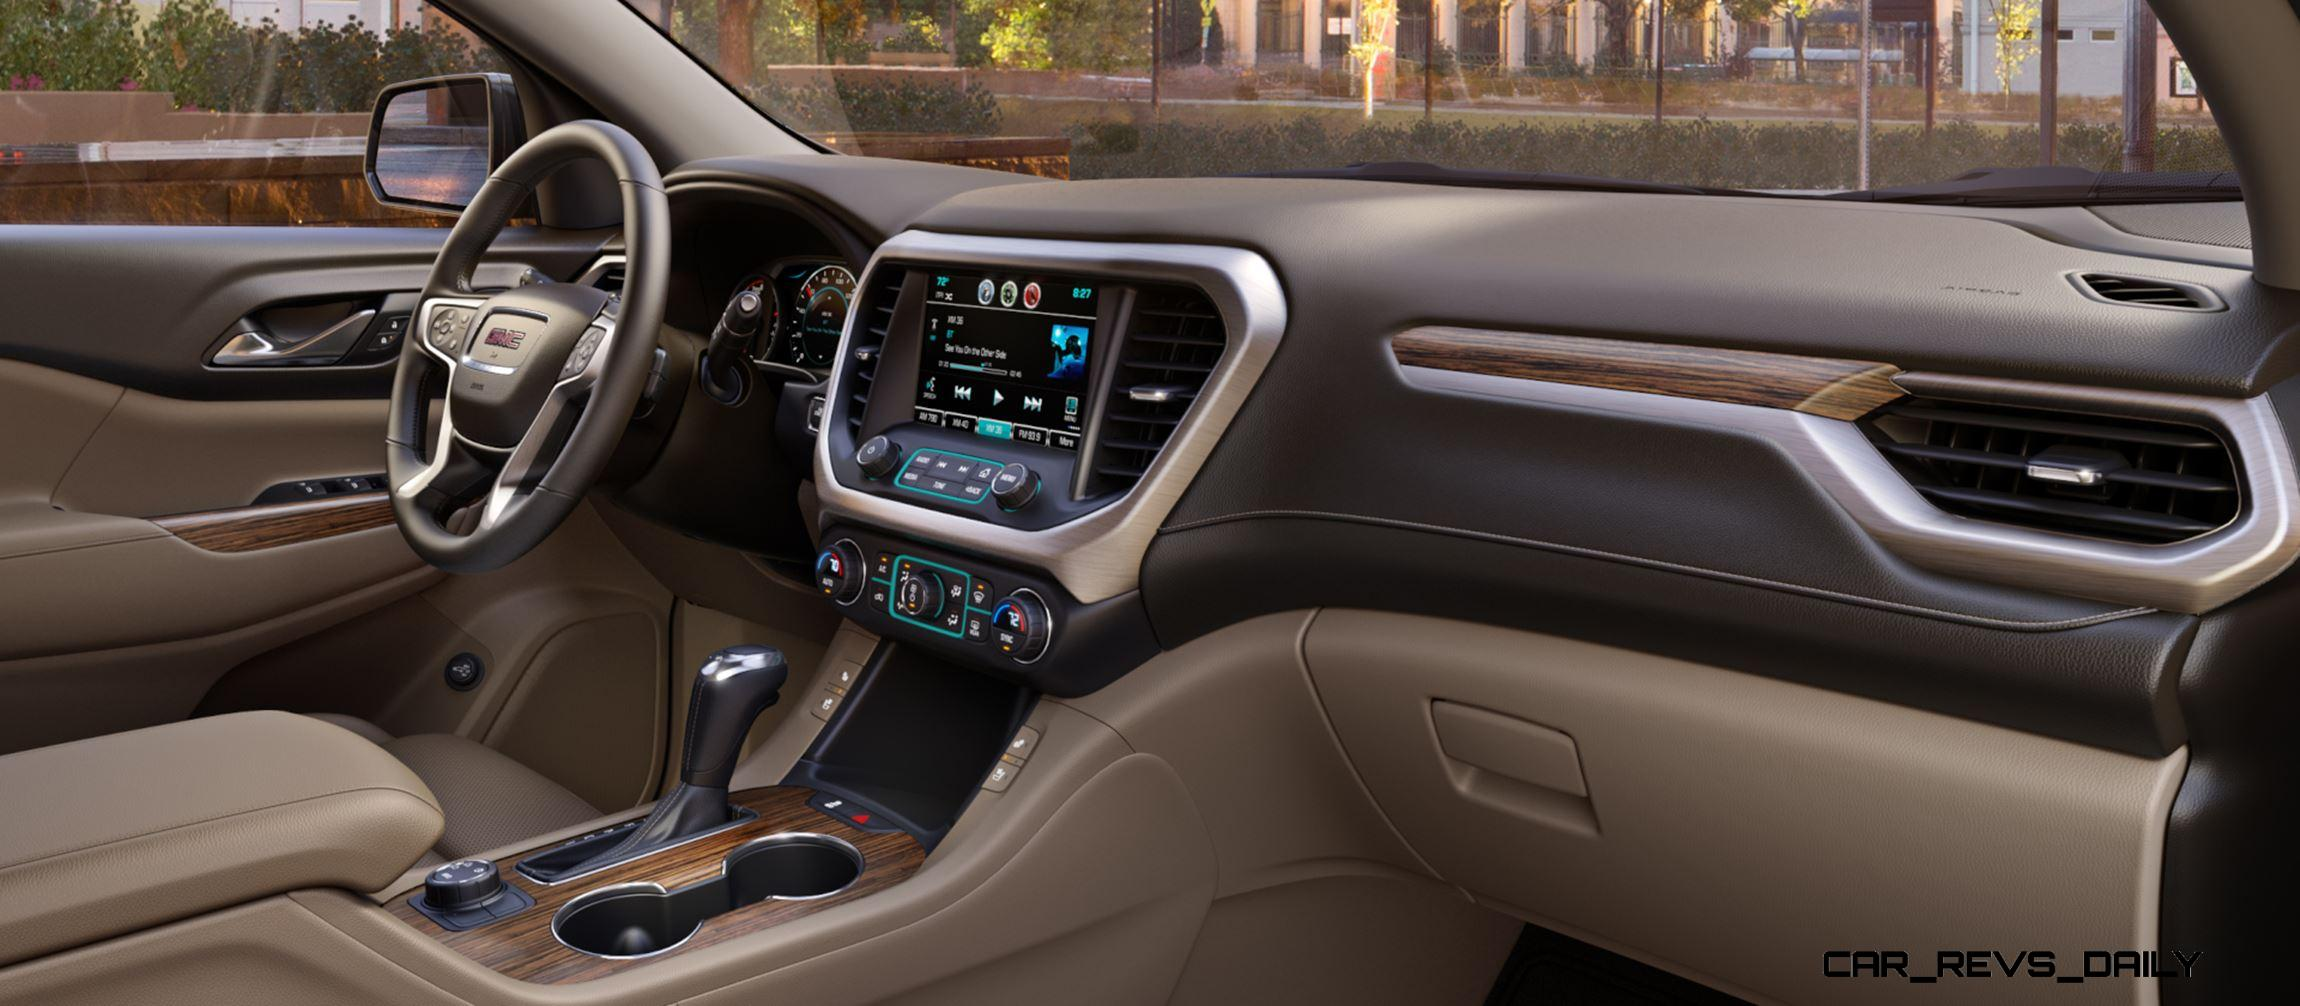 2017 Gmc Acadia Shows Radical Redesign 700lb Weight Loss New All Terrain Spec